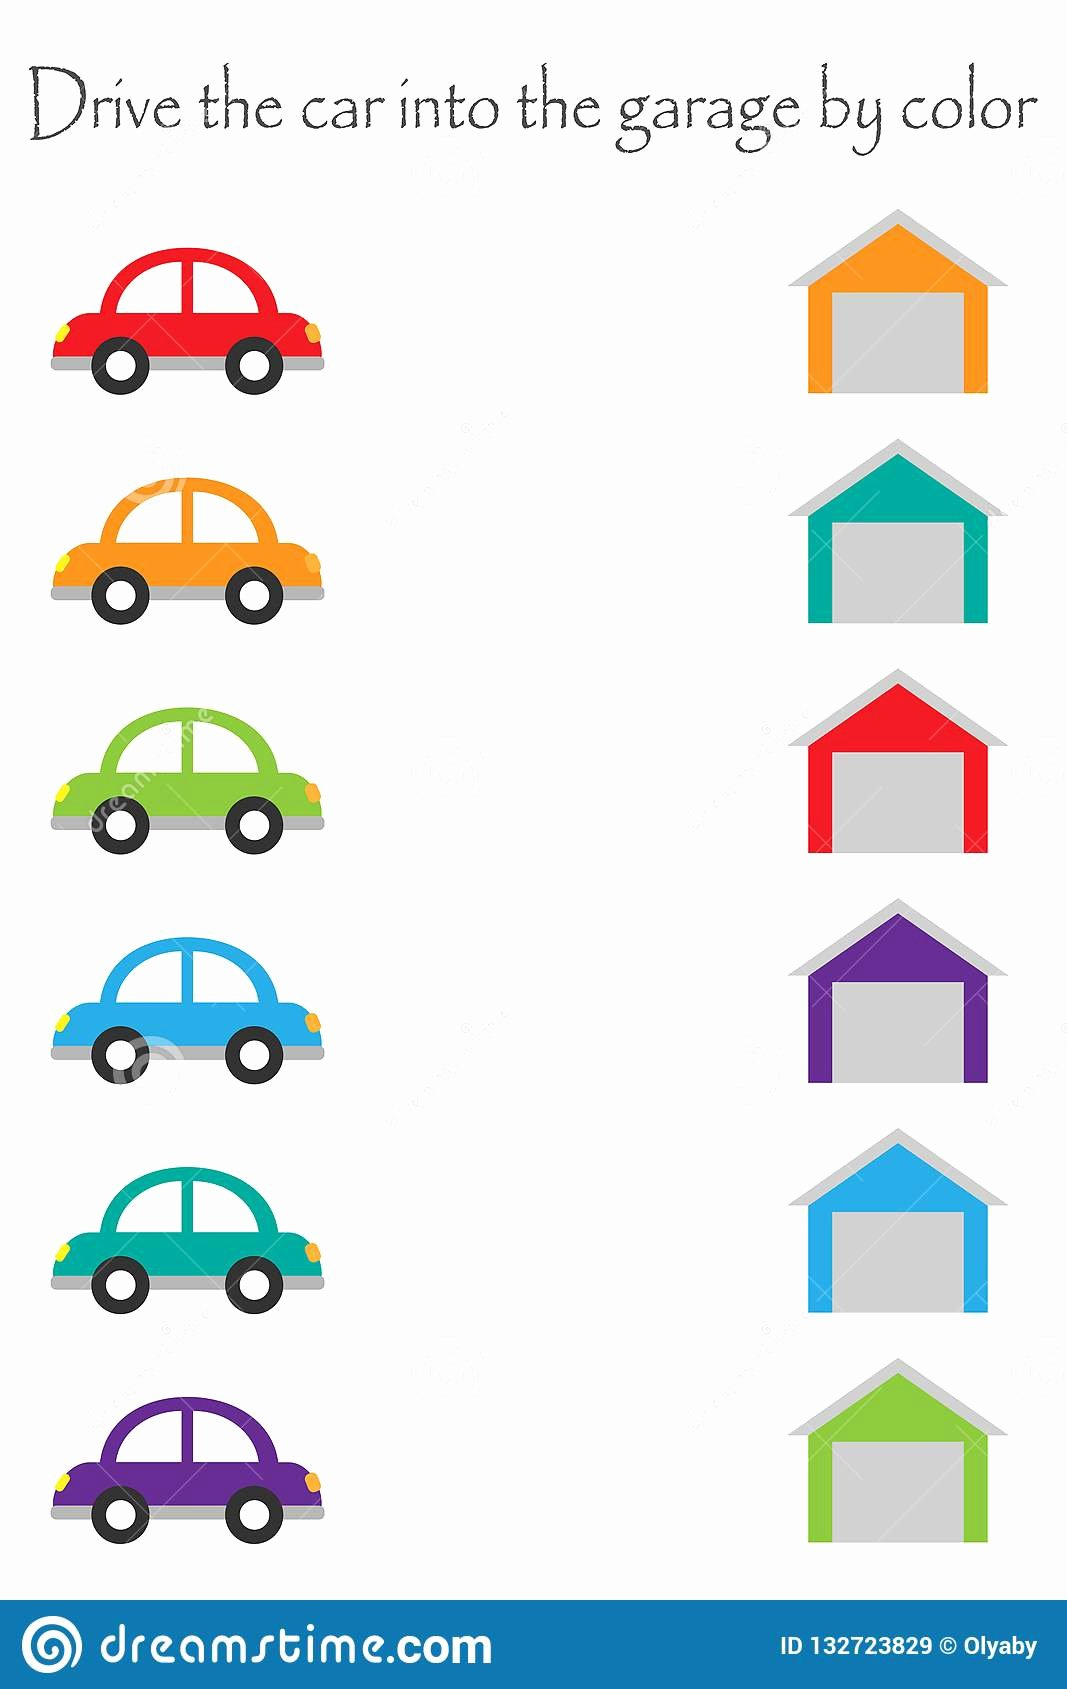 Car Worksheets for Preschoolers New Drive Colorful Cars In Cartoon Style Into Garages by Color